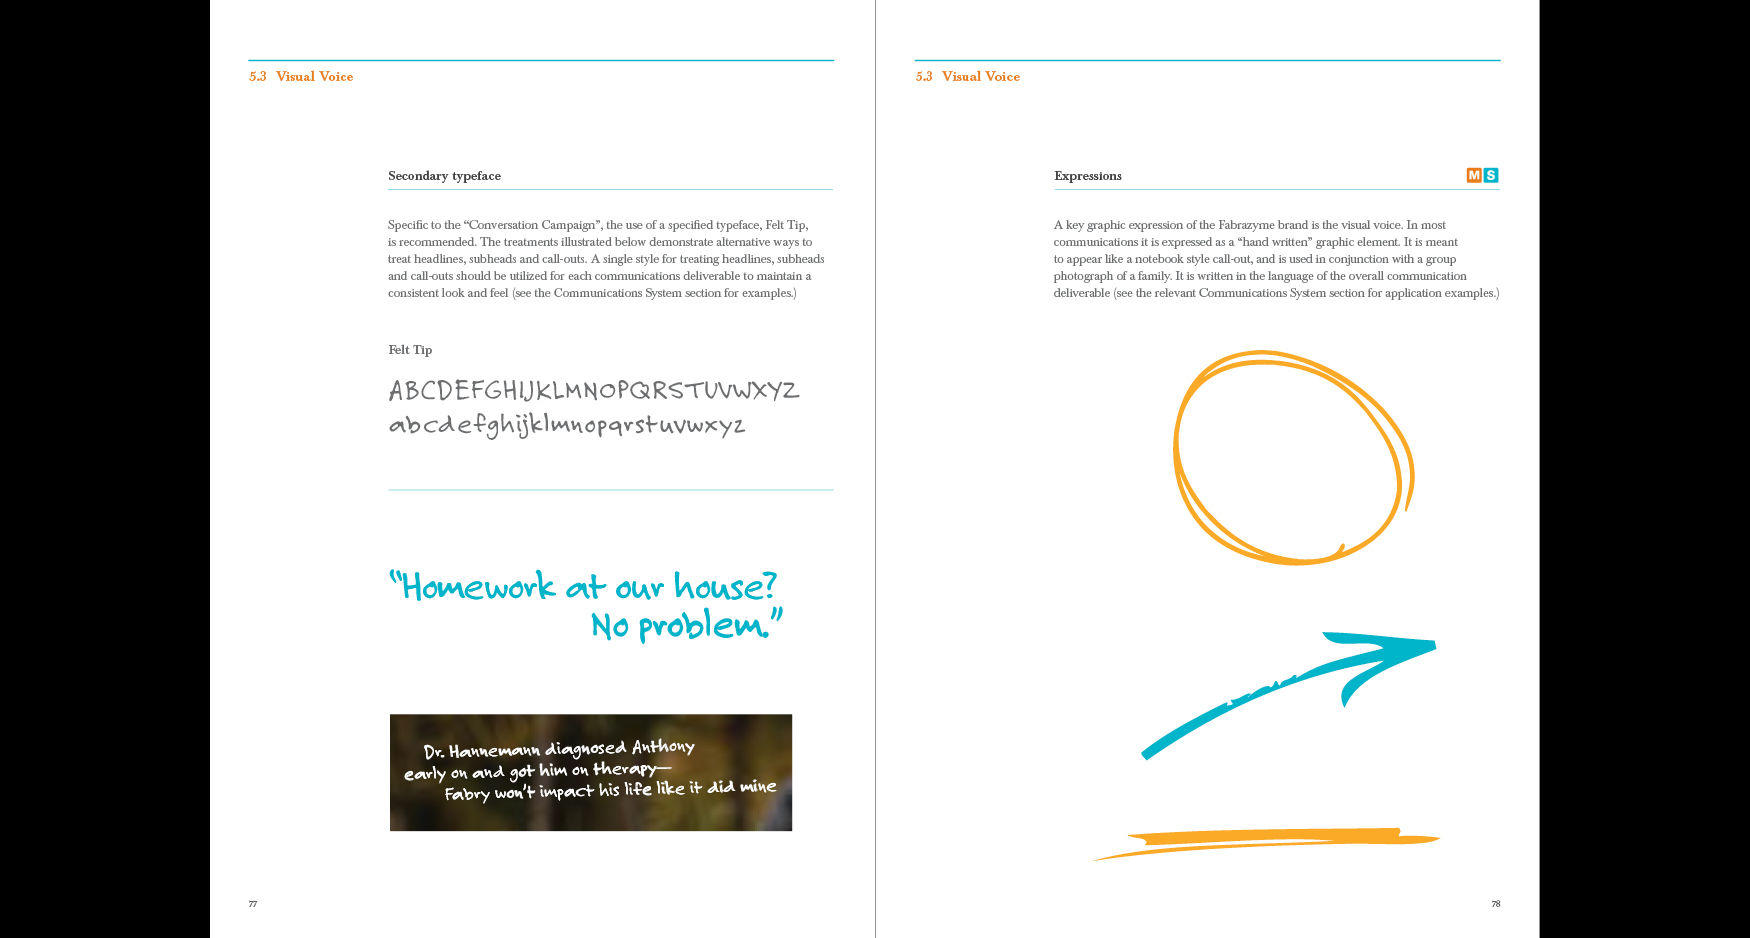 BP Large Images701 - FABRAZYME - BRAND GUIDELINES